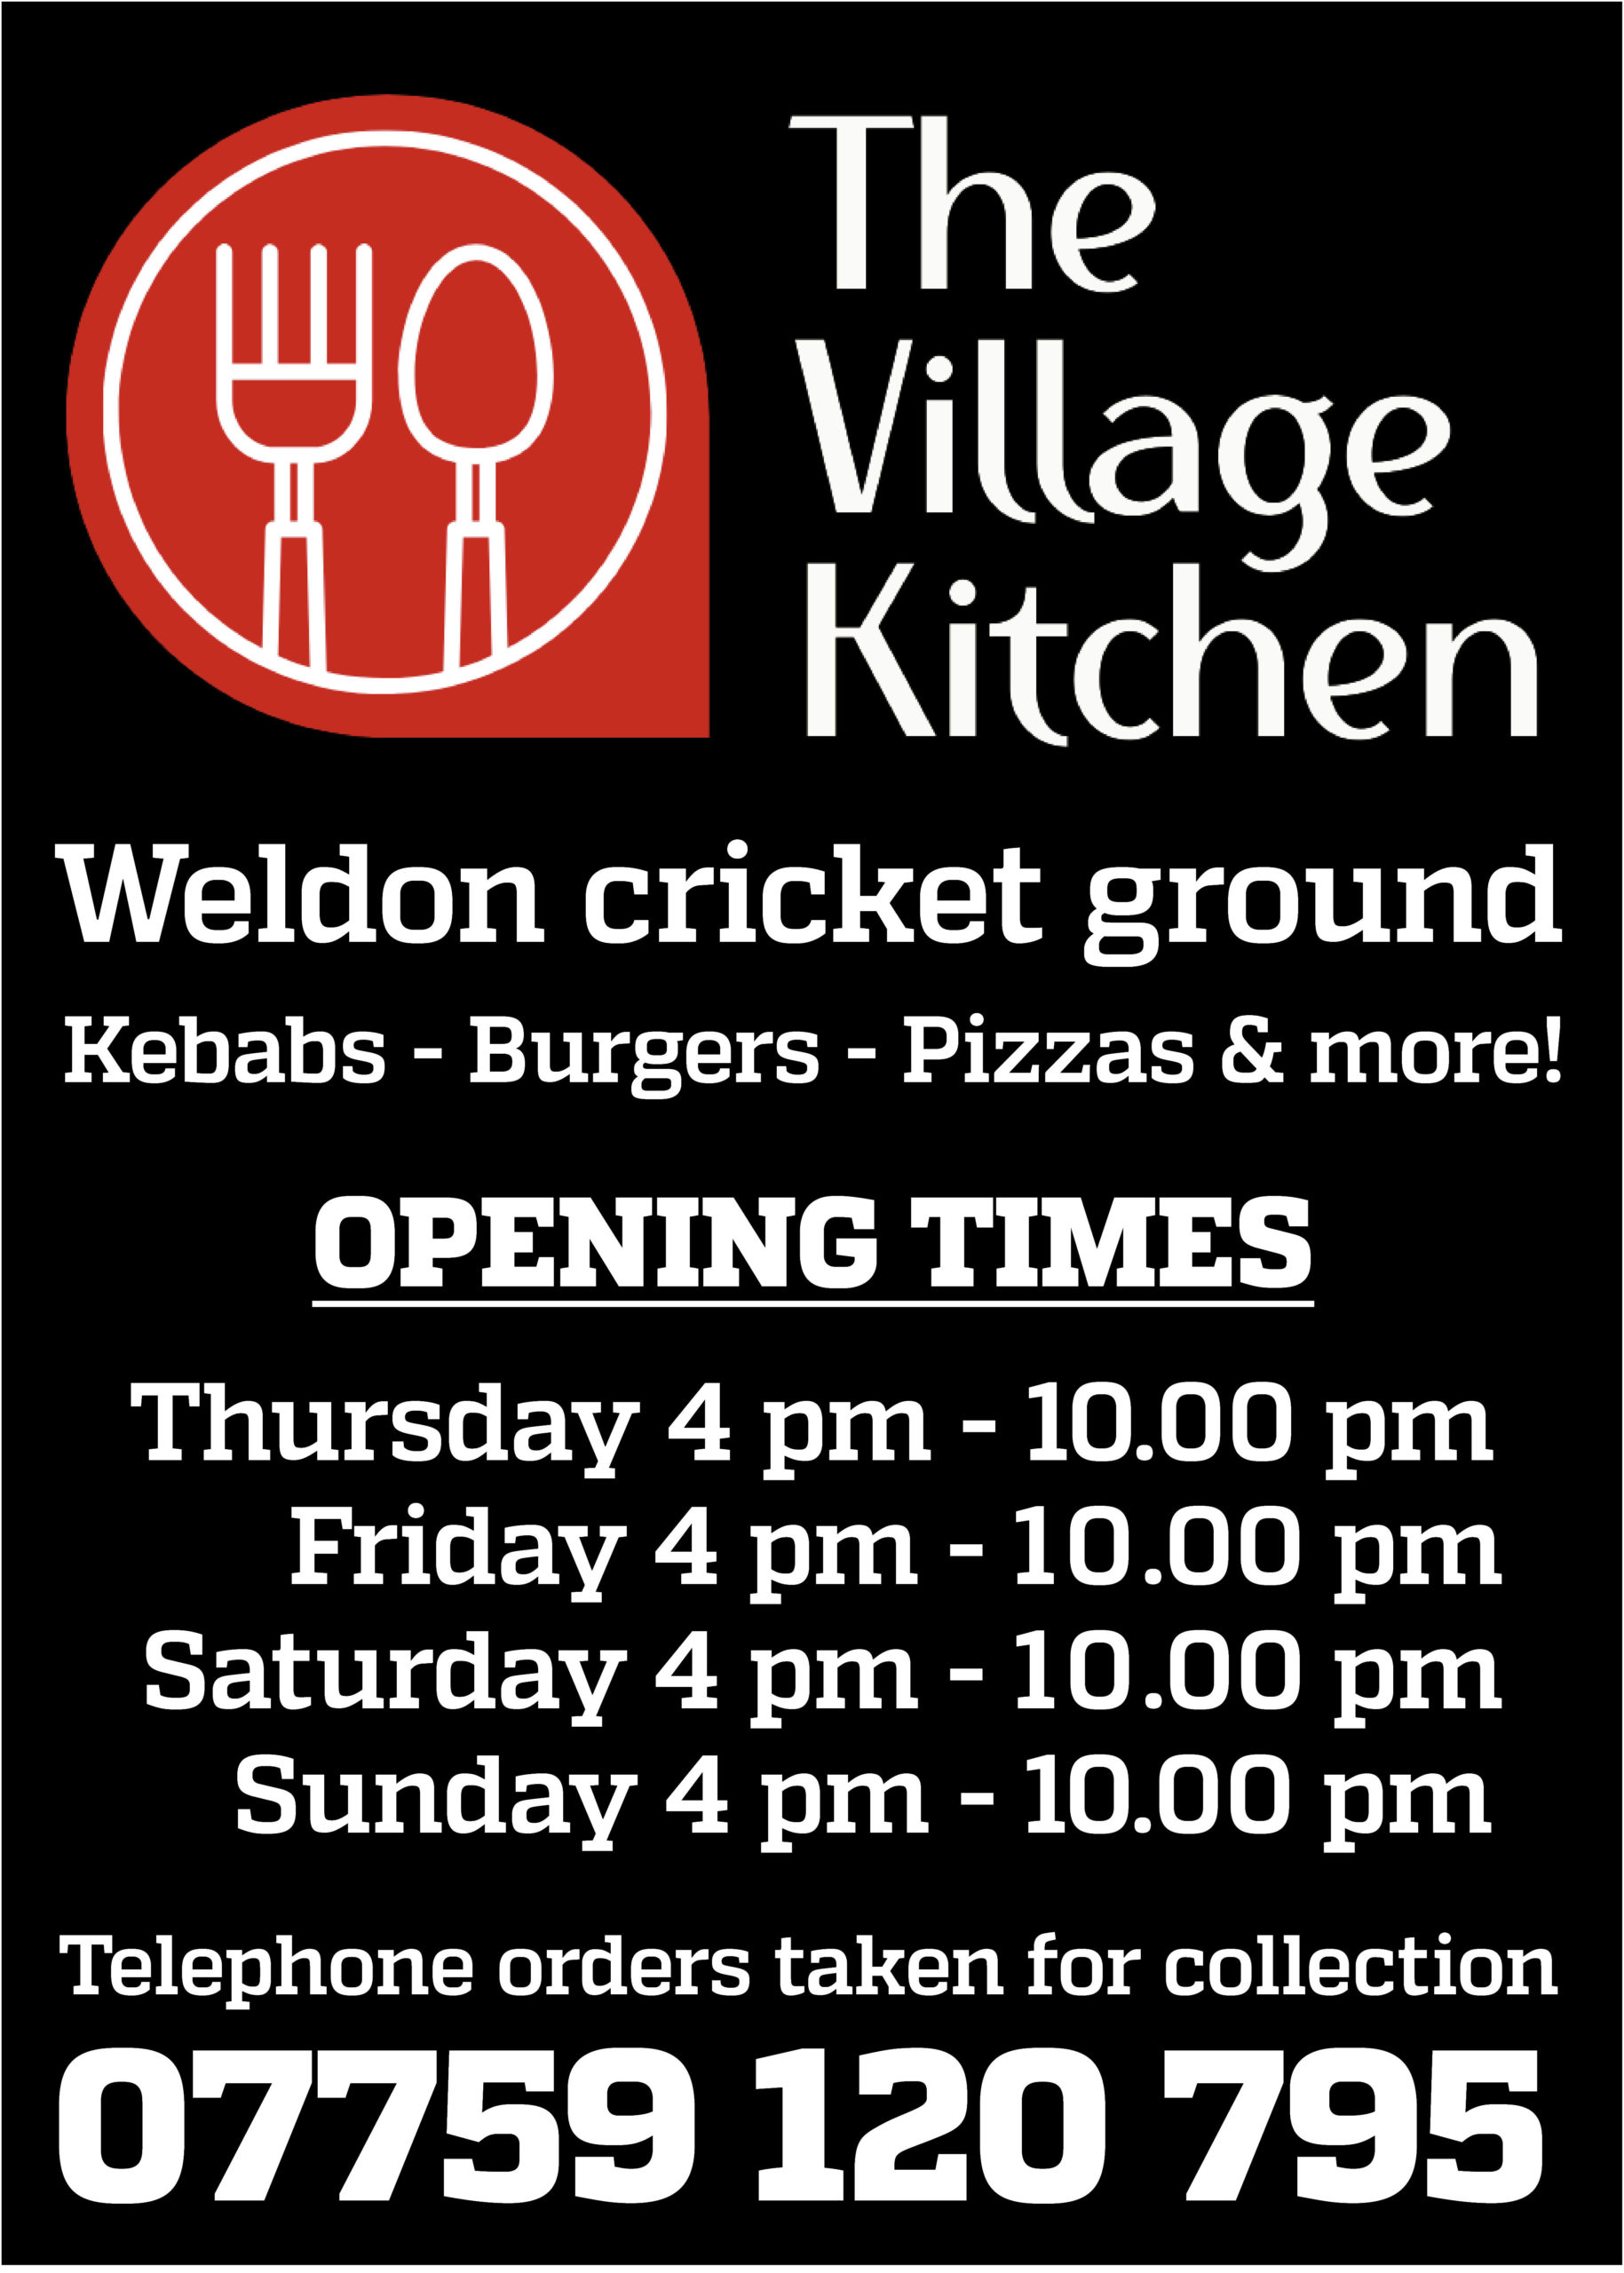 The Village kitchen Sidebar Ad revised hours